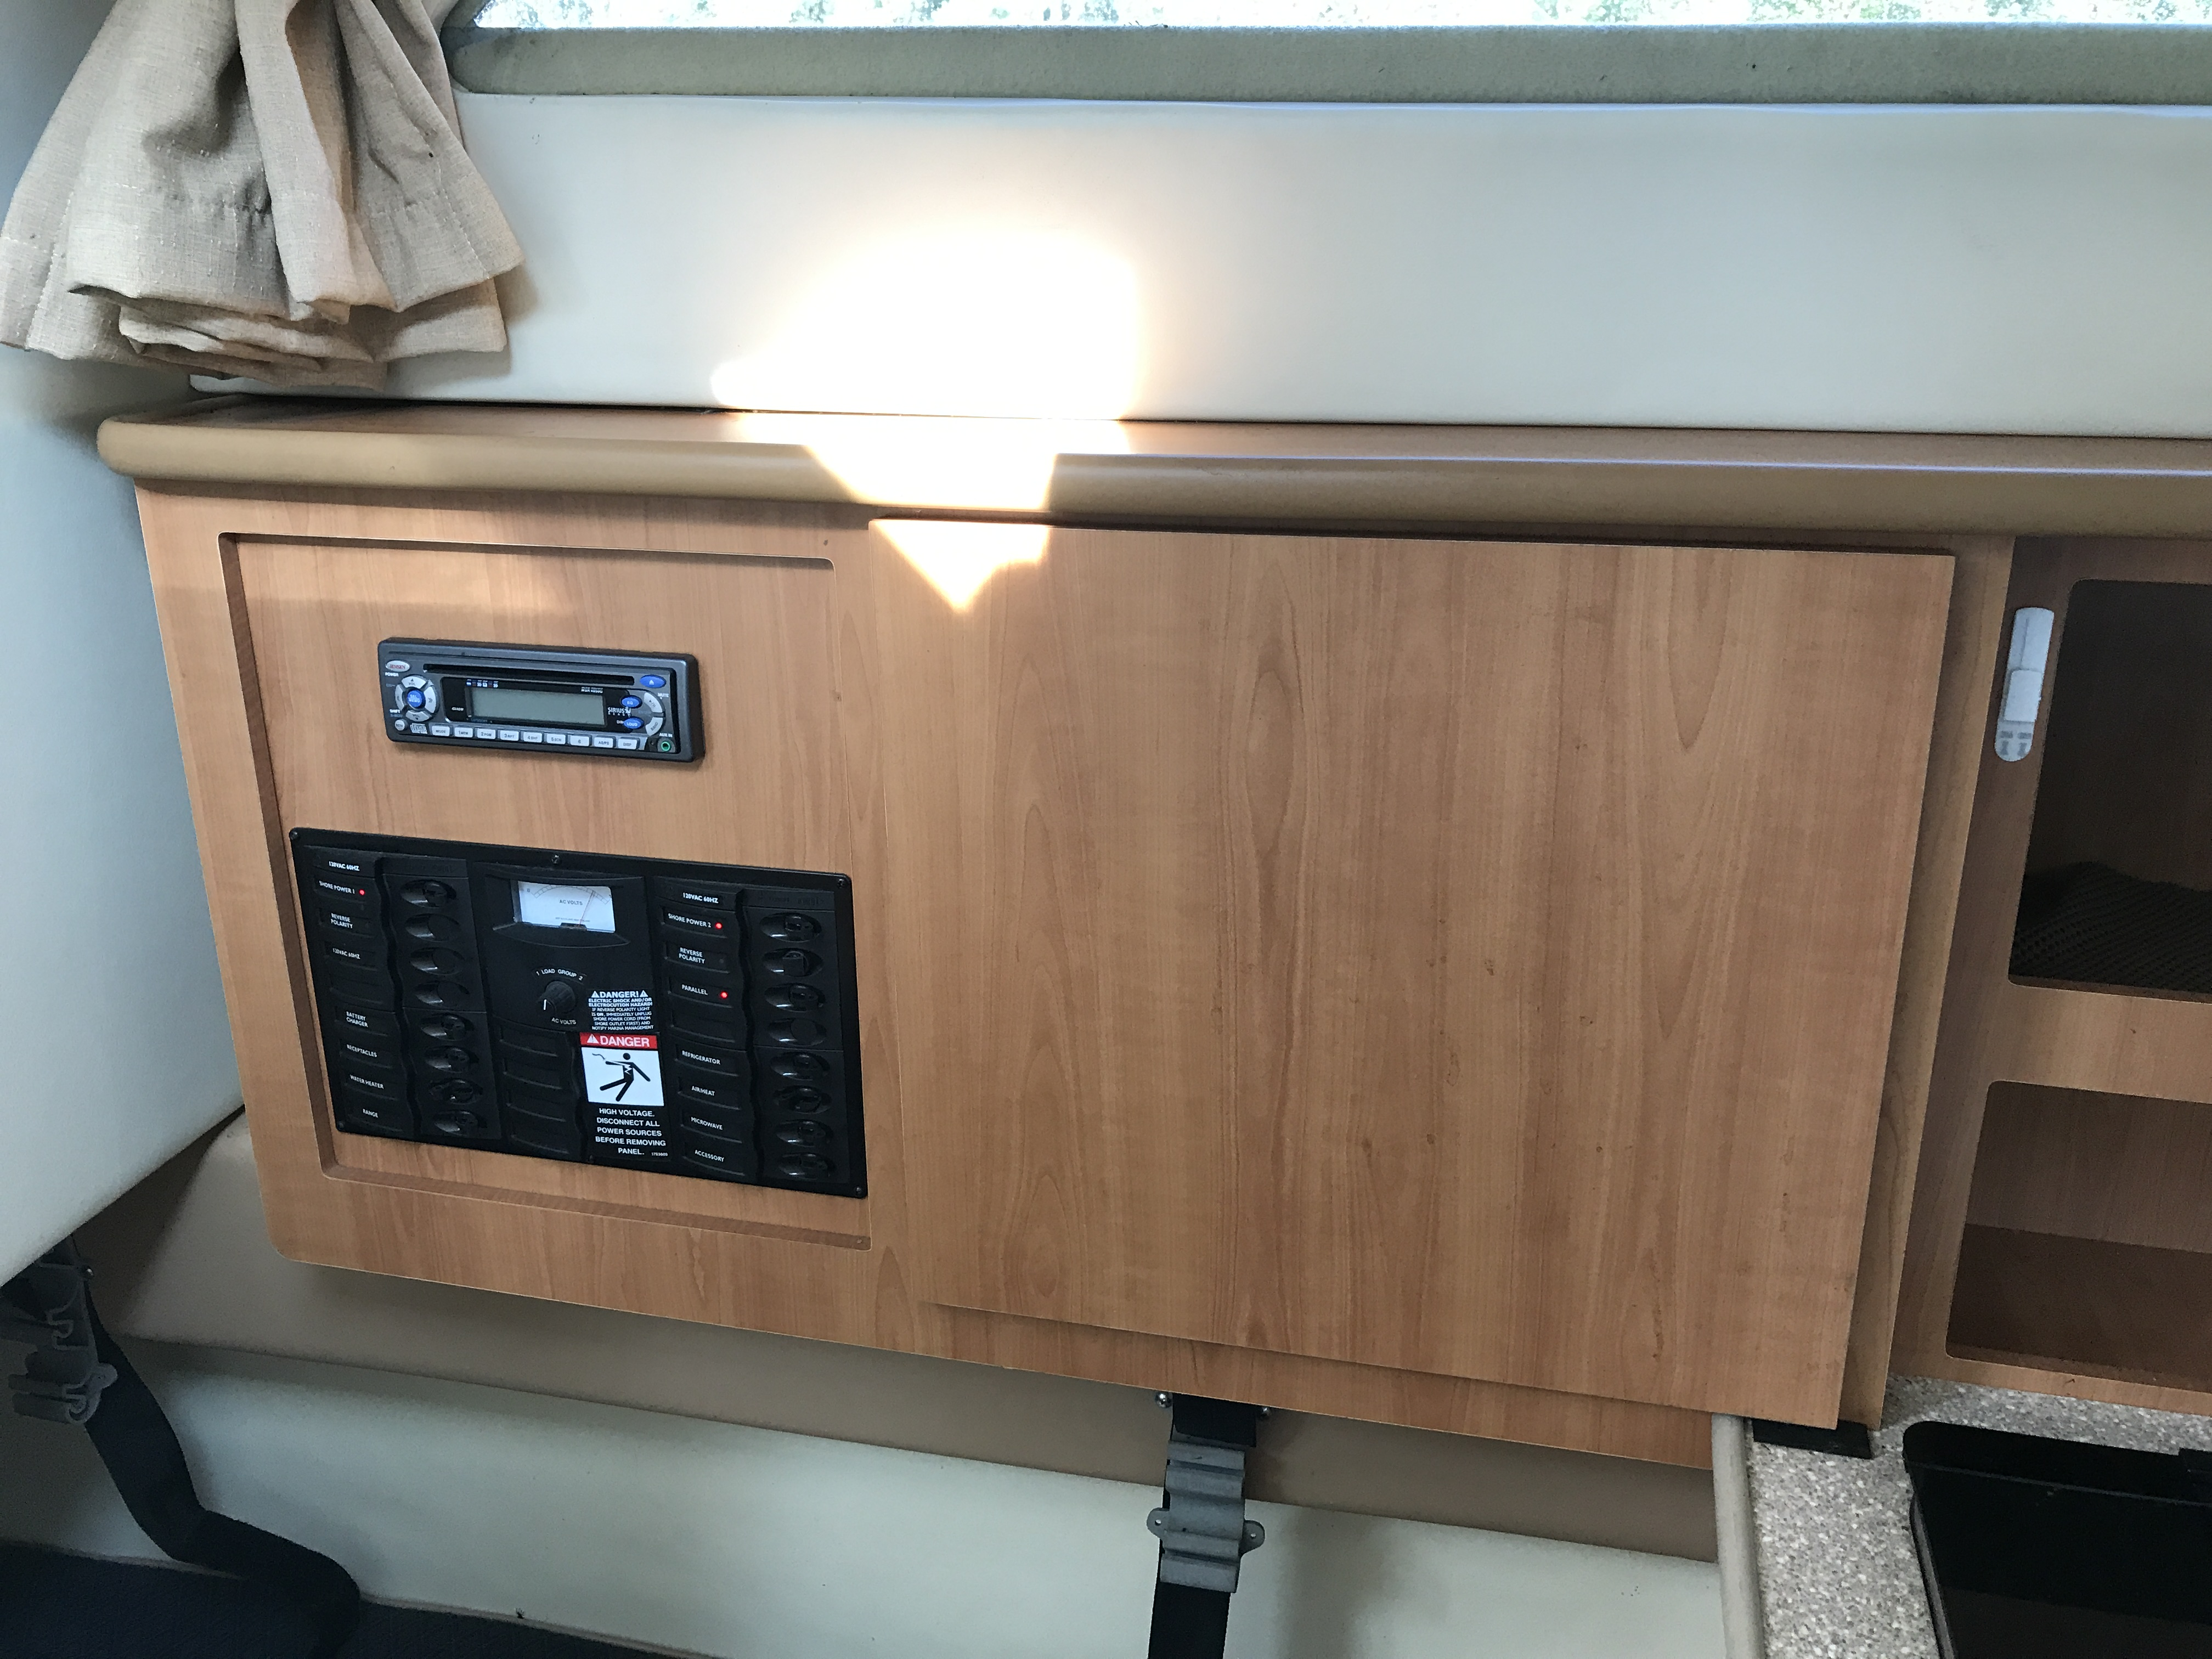 Bayliner Discovery 246 EC - stereo, electrical panel, and cabinet